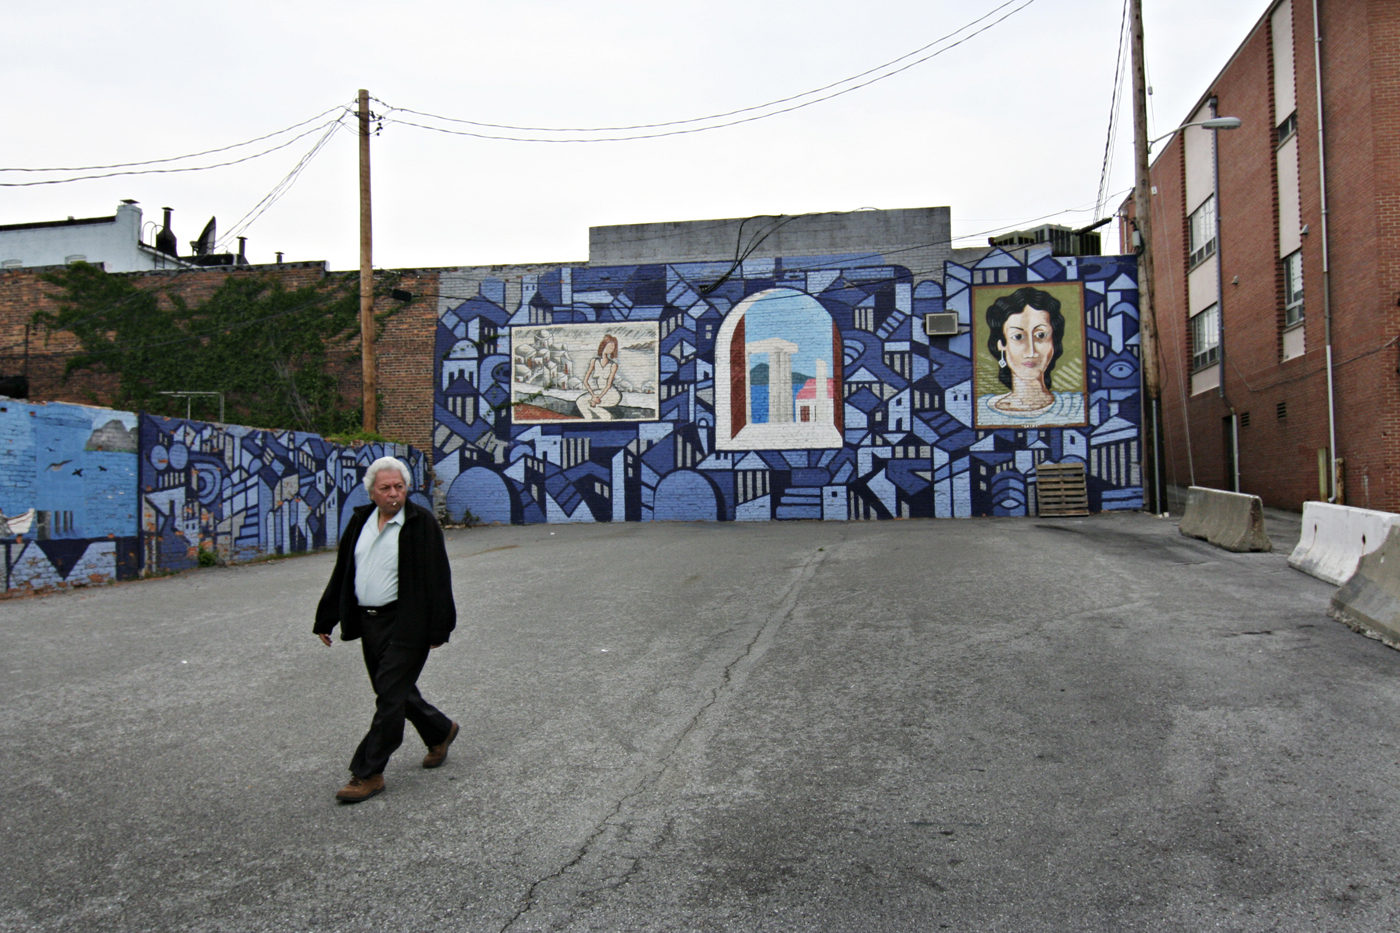 Exploring Baltimore's neighborhoods: Greektown